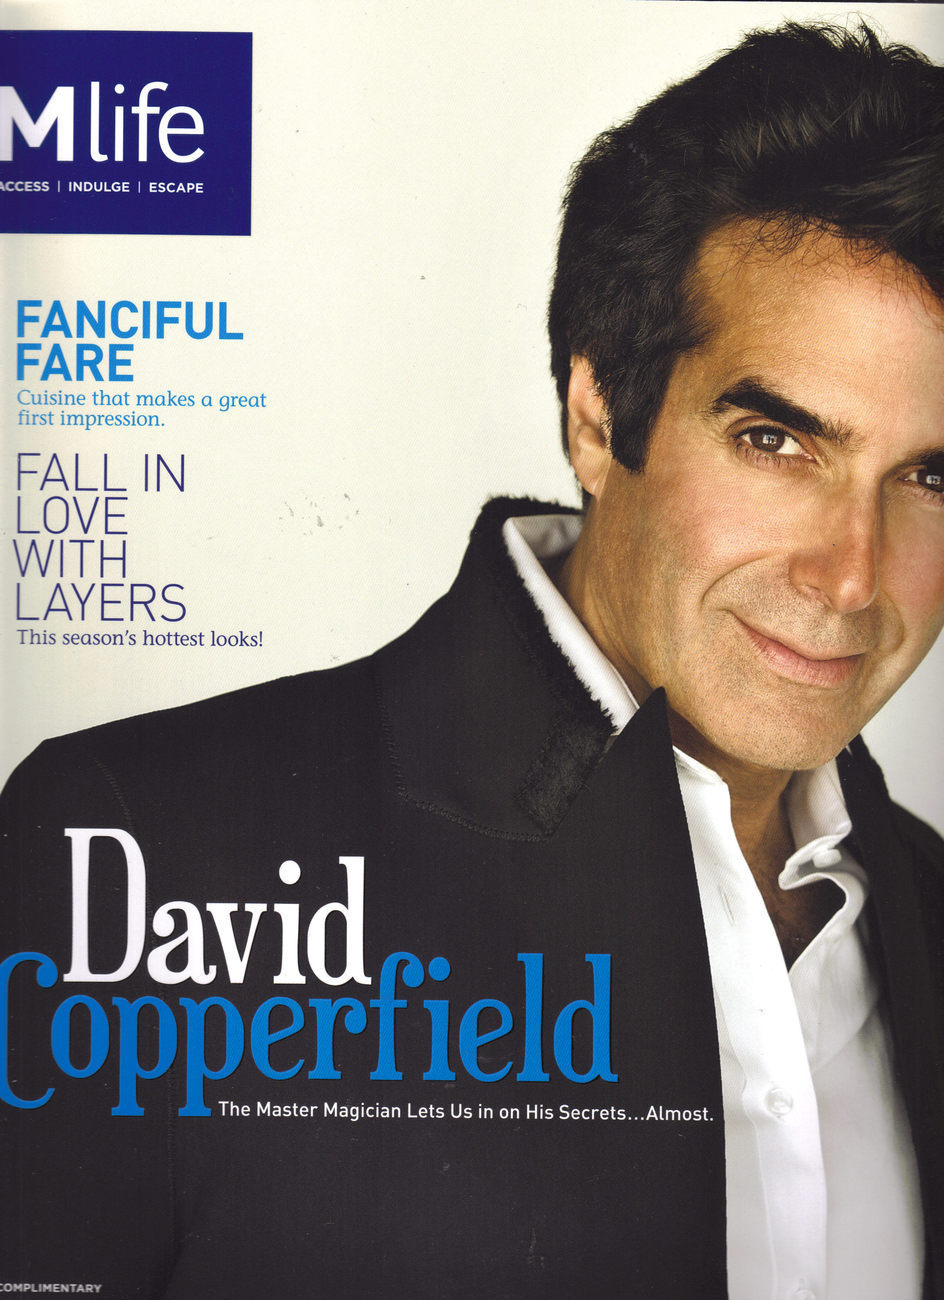 Mlife copperfield